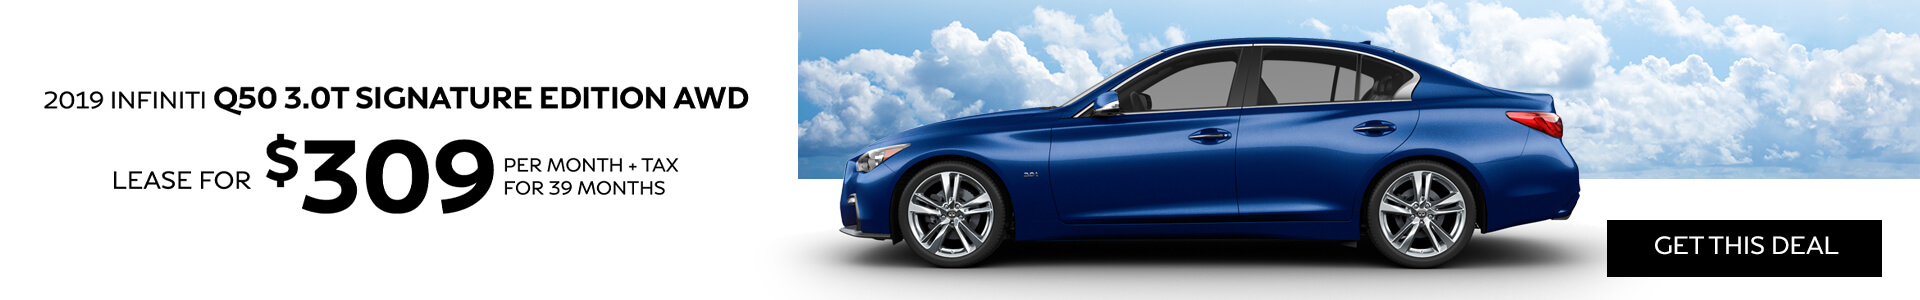 Q50 SE - Lease for $309